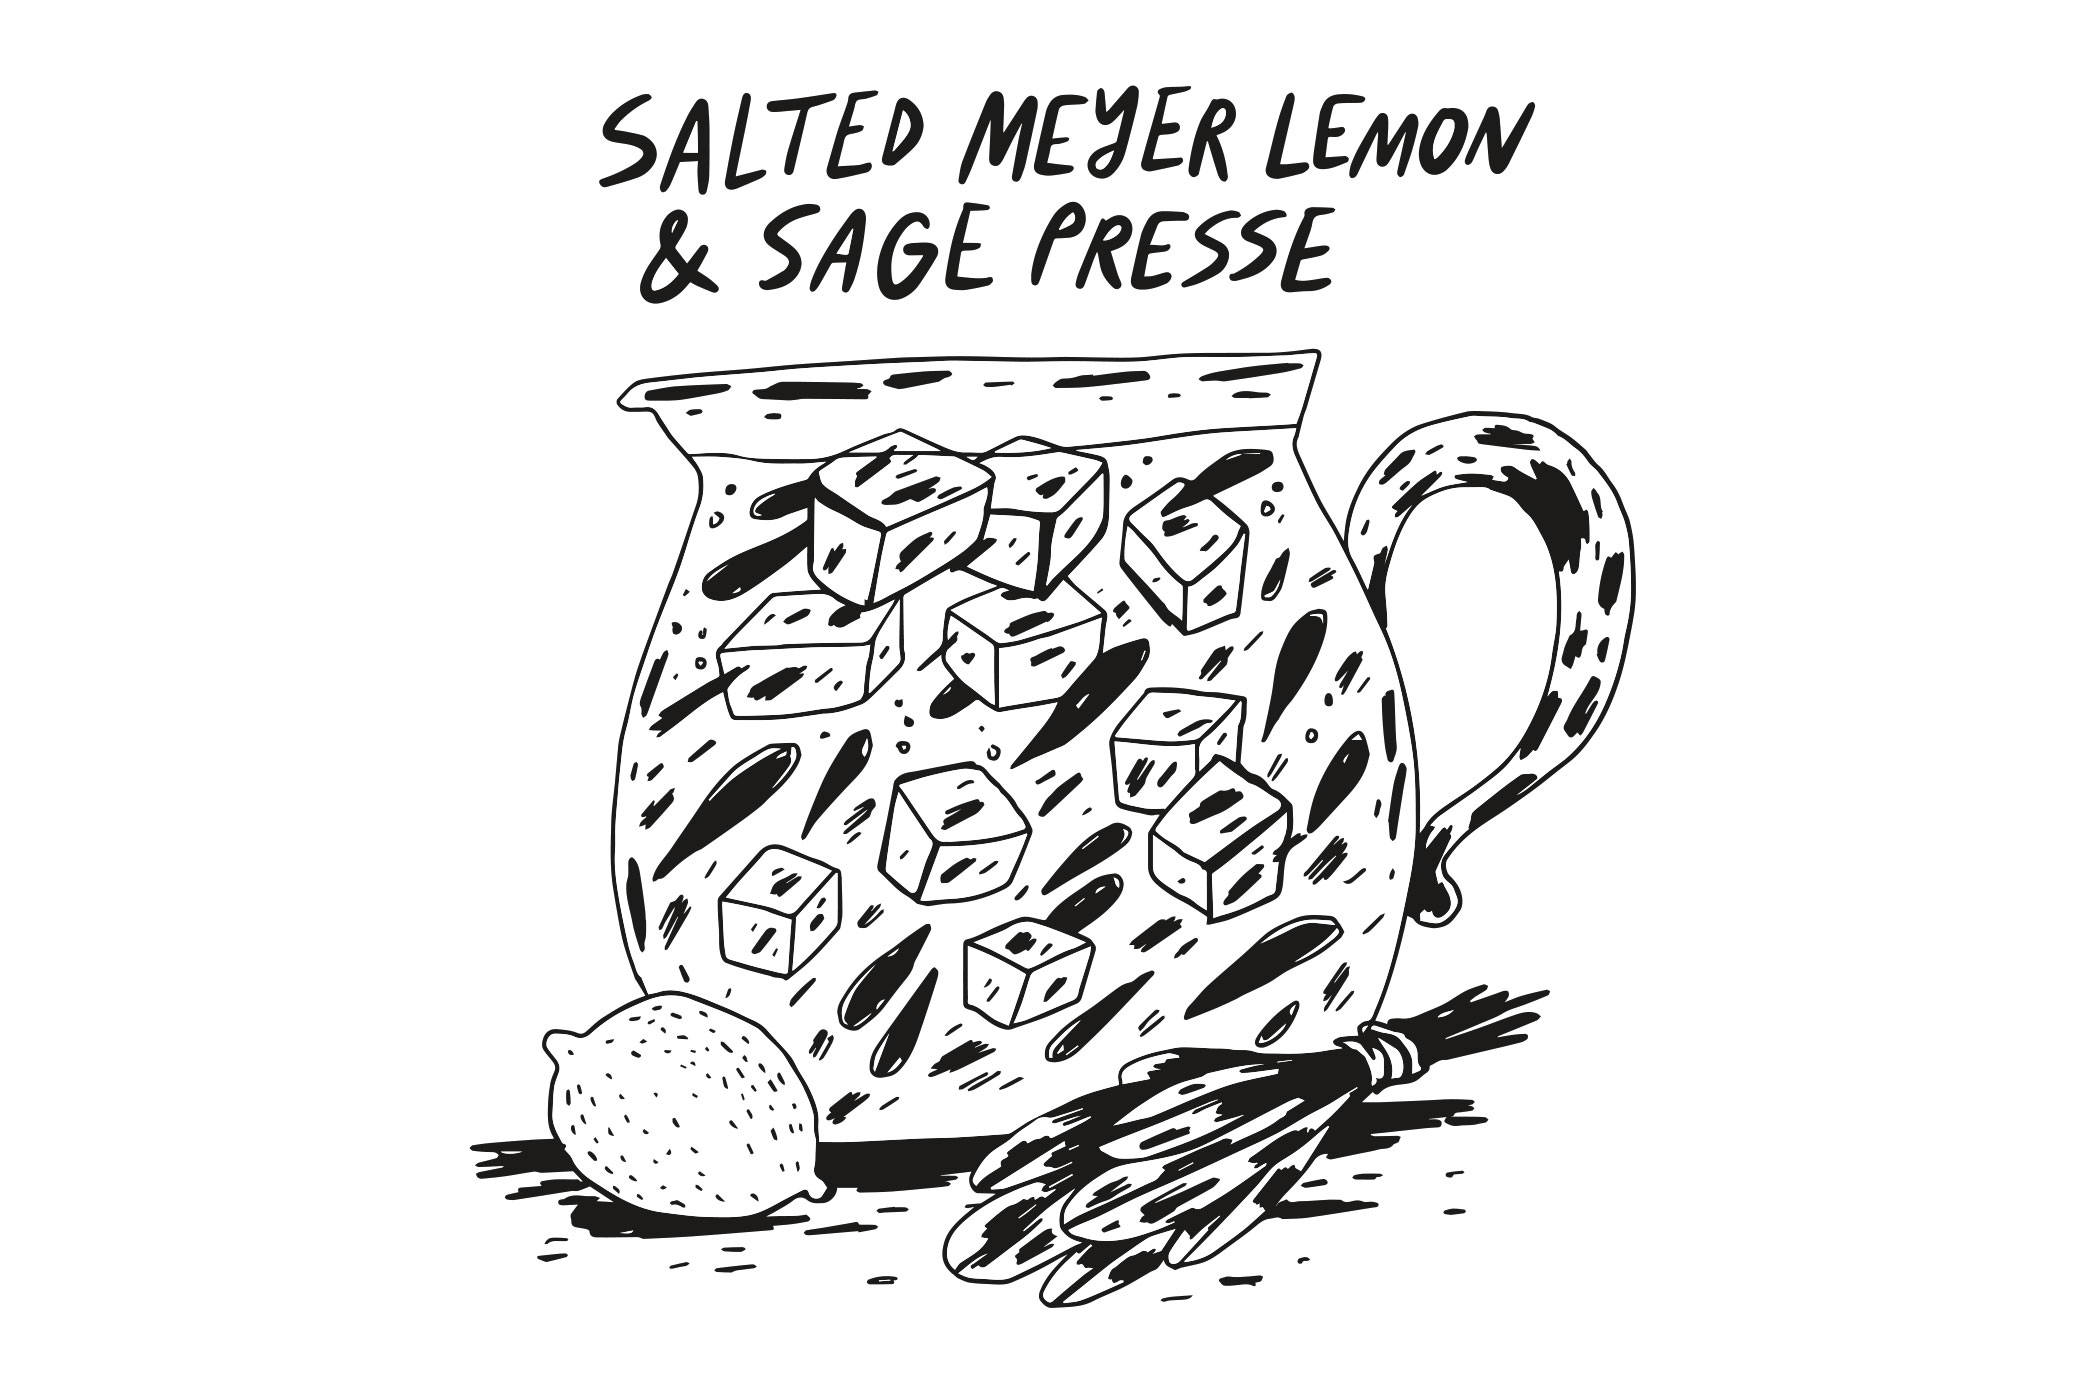 Salted Meyer Lemon web2